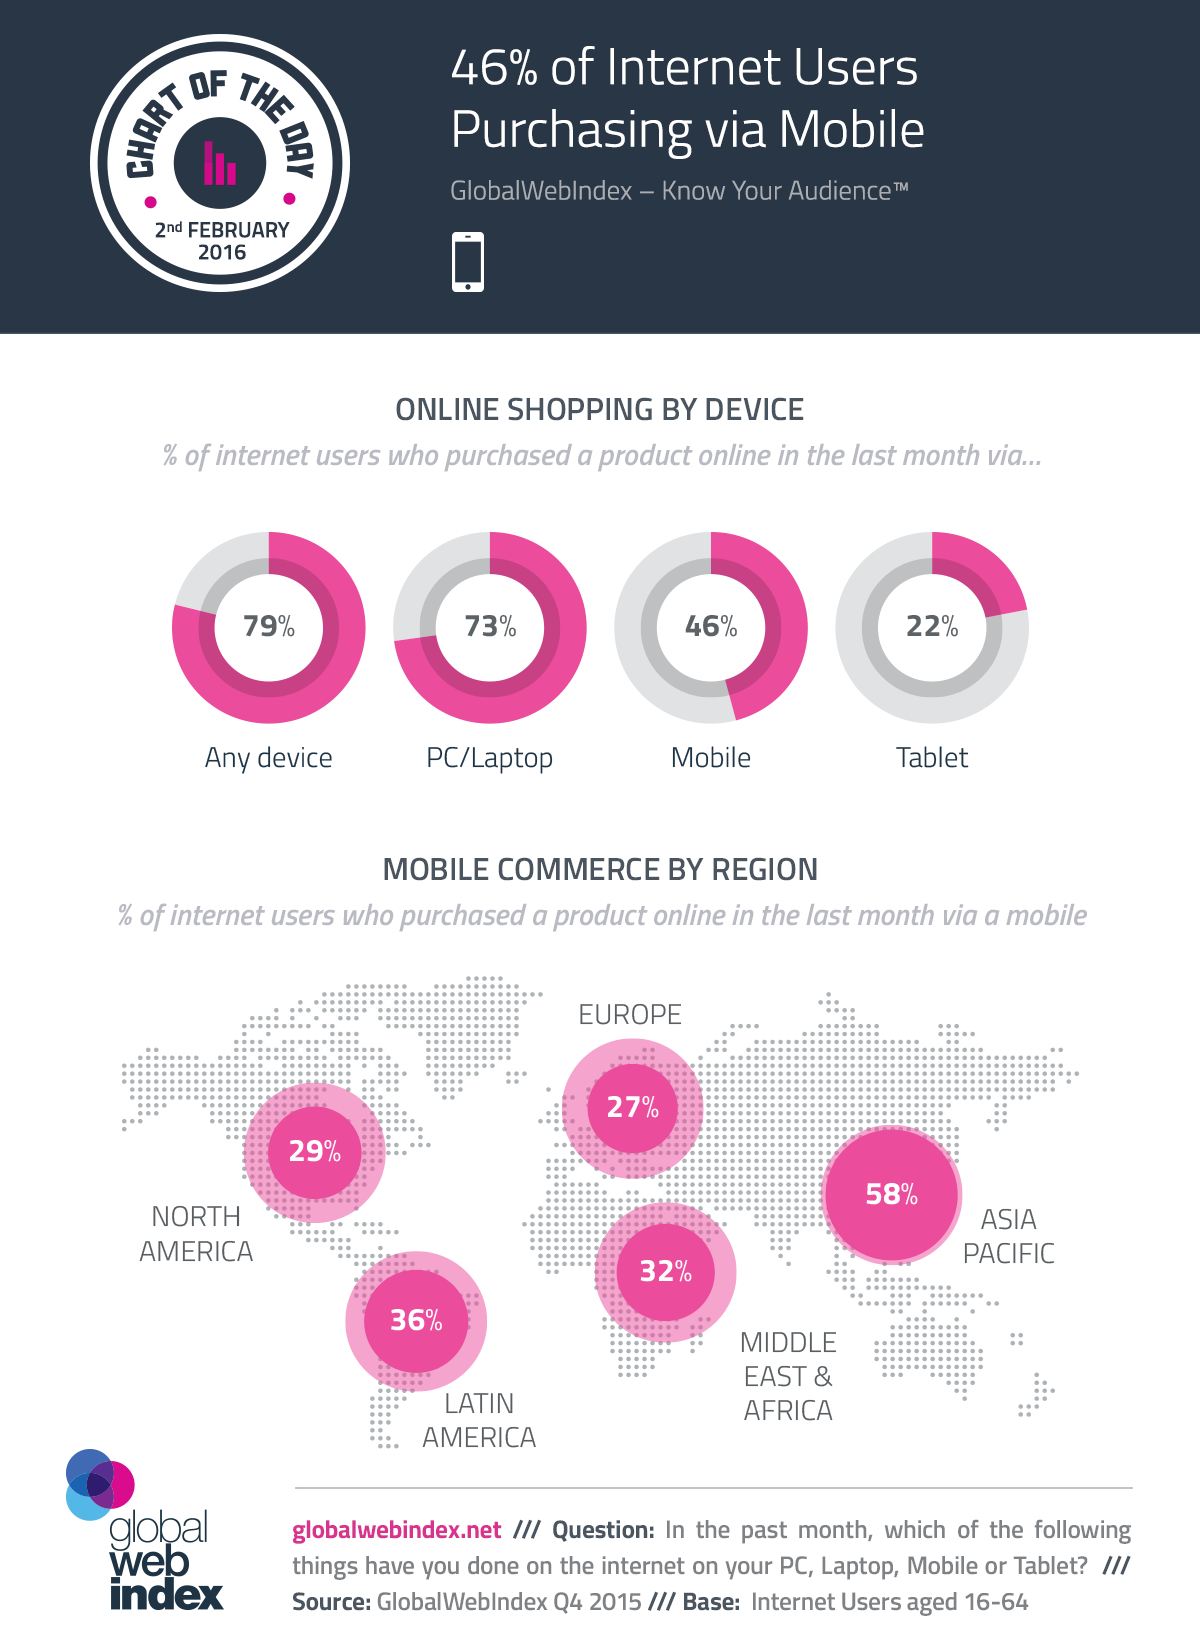 46% of Internet Users Purchasing via Mobile